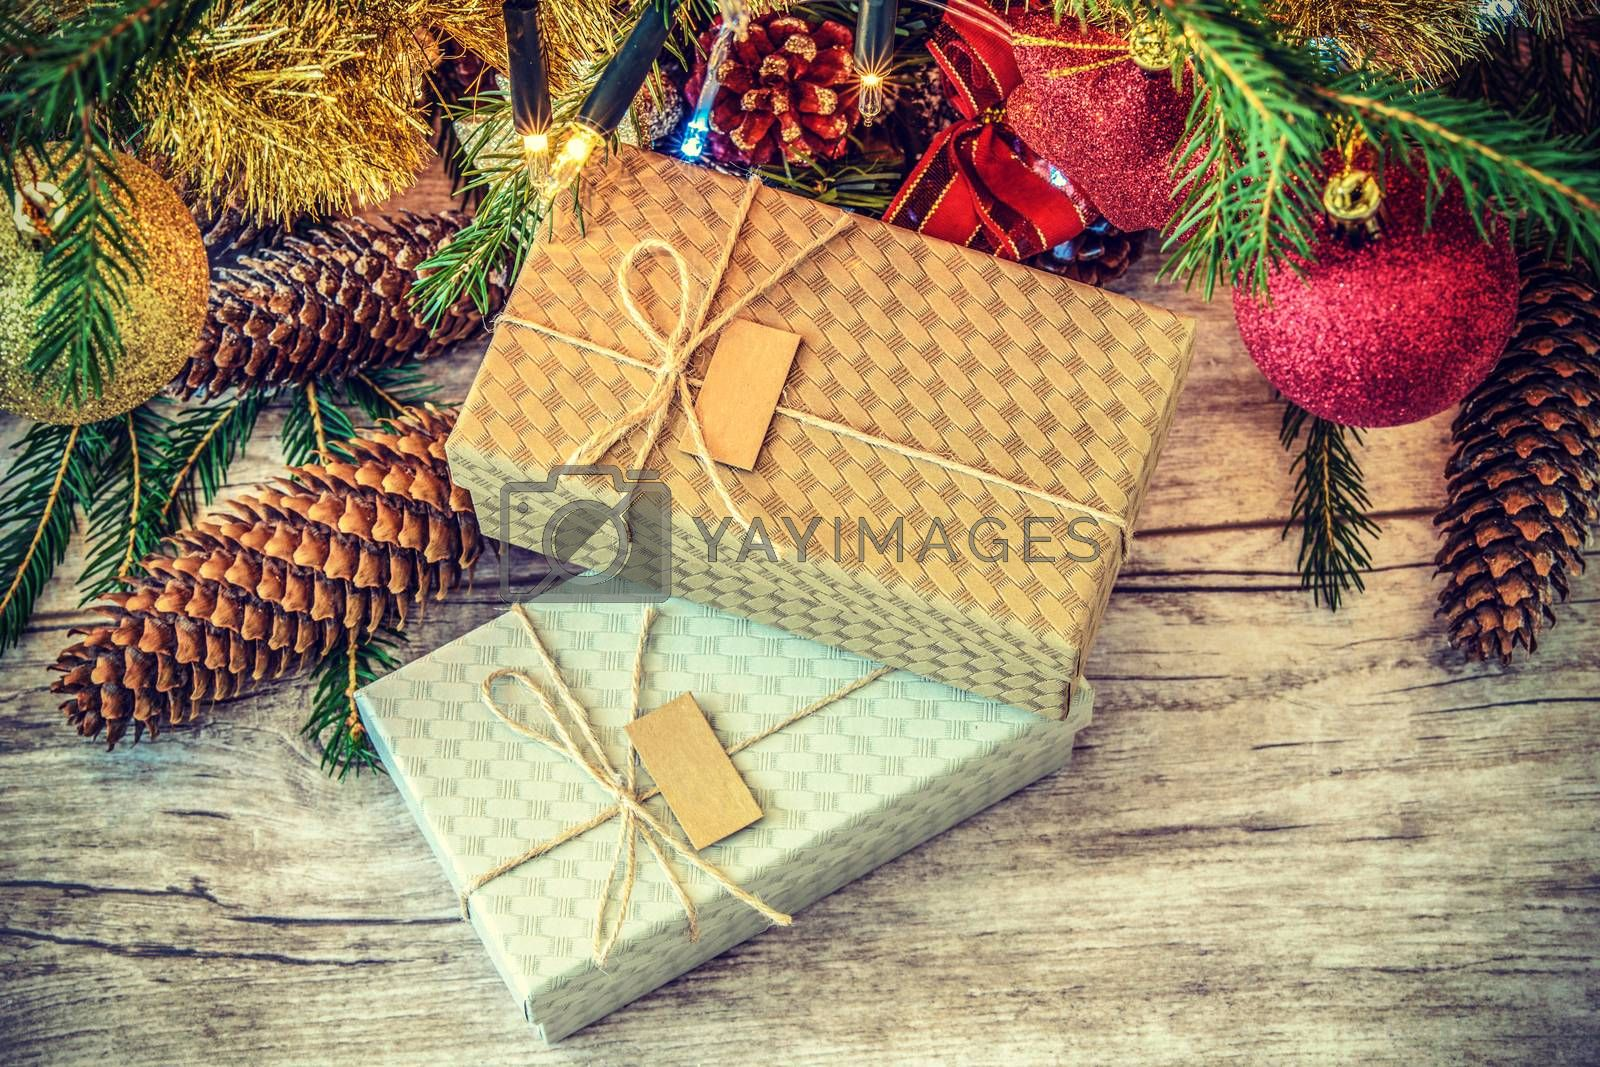 Overhead retro shot on cartons decorated with string and label on a wooden table under Christmas tree with cones